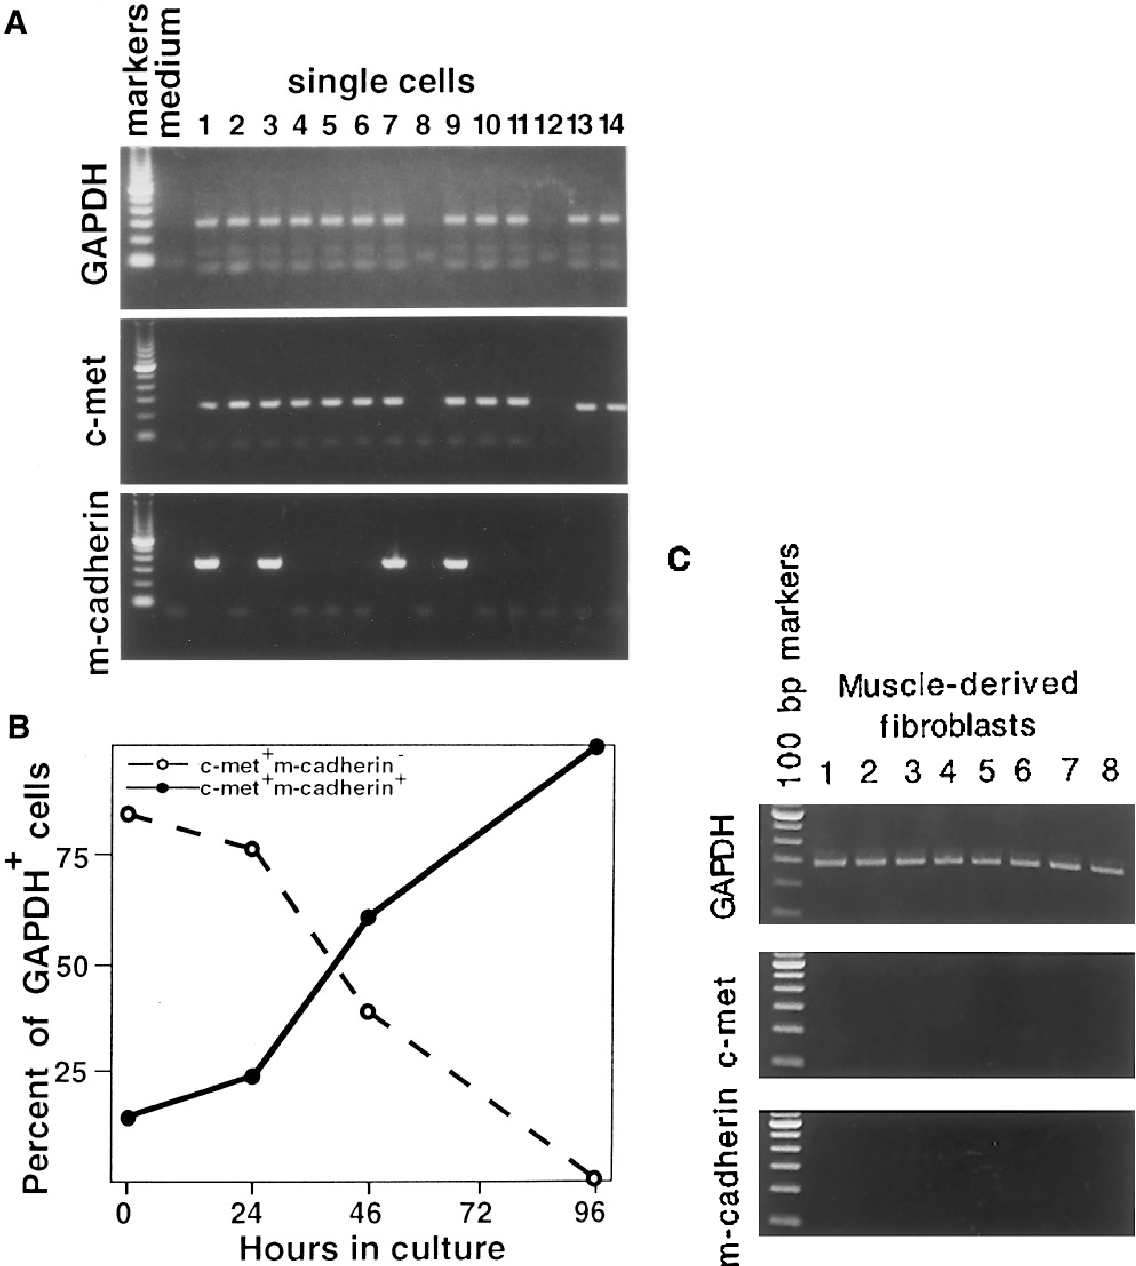 FIG. 3. (A) Sample single-cell RT-PCR gel from 48 hr in culture samples showing GAPDH (expected product 290 bp), c-met (expected product 249 bp), and m-cadherin (expected product 316 bp); marker, 100 bp ladder (Gibco). (B) Line graph illustrating the population shift from c-met/ m-cadherin0 (dashed line) to c-met/ m-cadherin/ (solid line) over the first 96 hr in culture of satellite cells on isolated myofibers. (C) Single-cell RT-PCR of muscle-derived fibroblasts harvested from the surface of a tissue culture dish. All GAPDH-positive cells were negative for both c-met and m-cadherin.